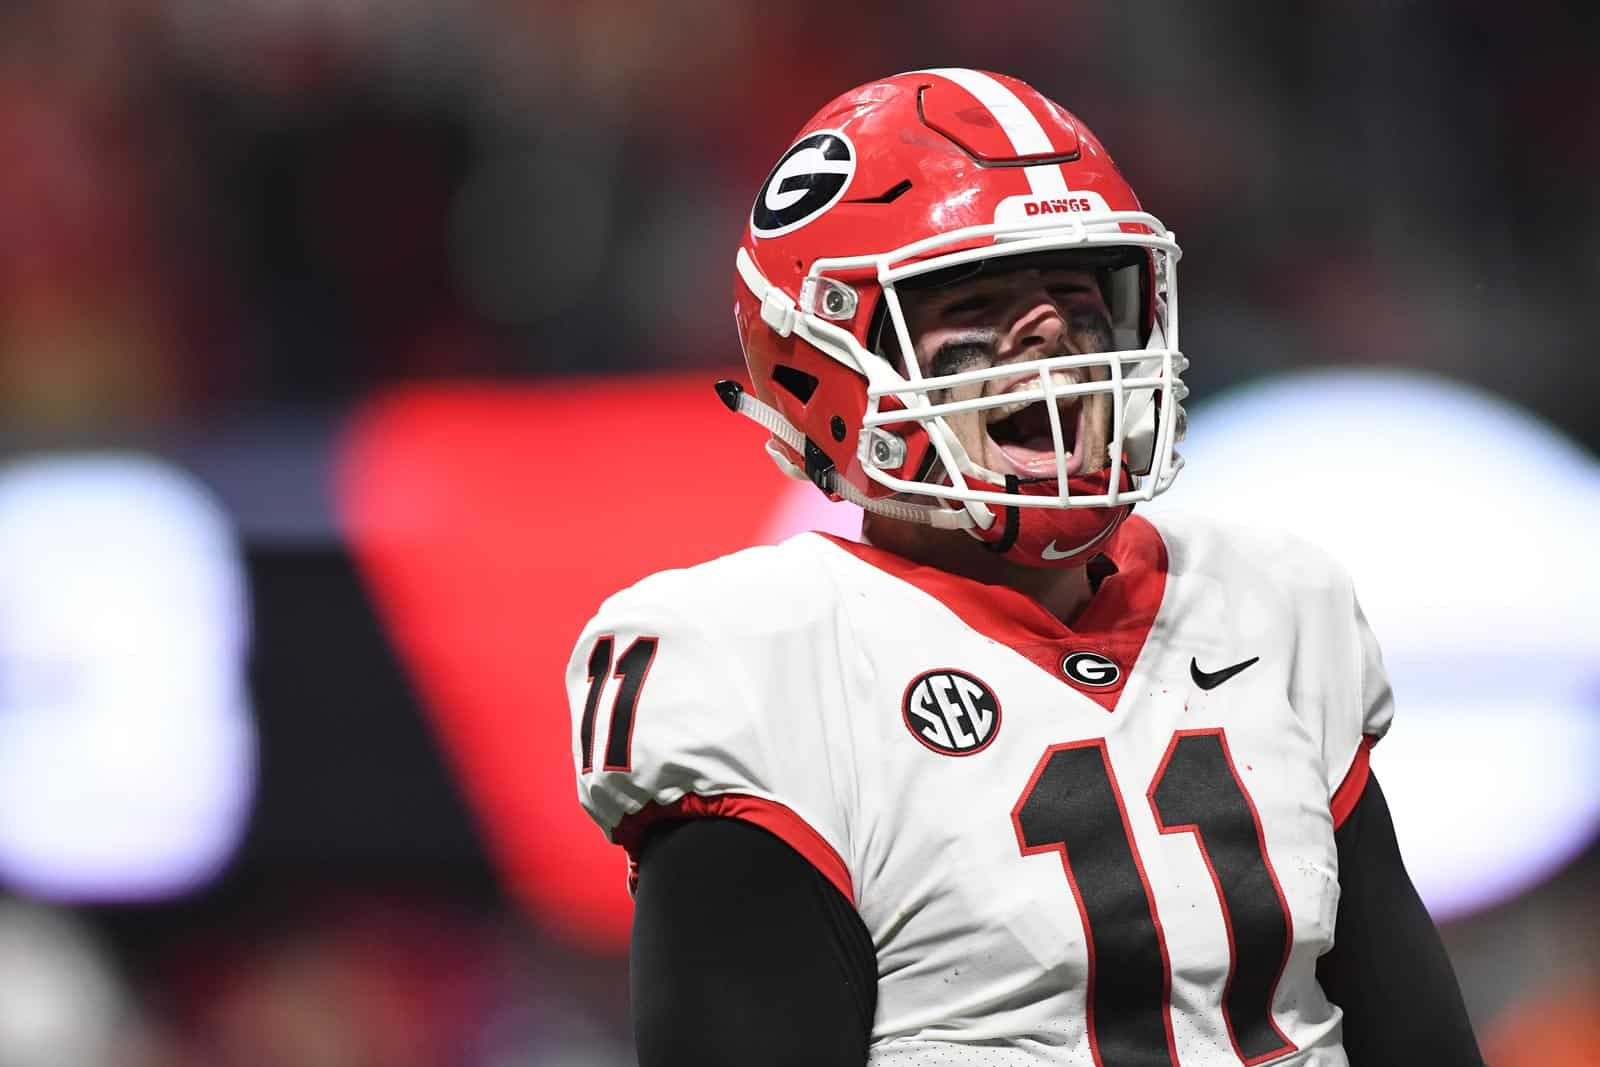 UGA Football: Jake Fromm